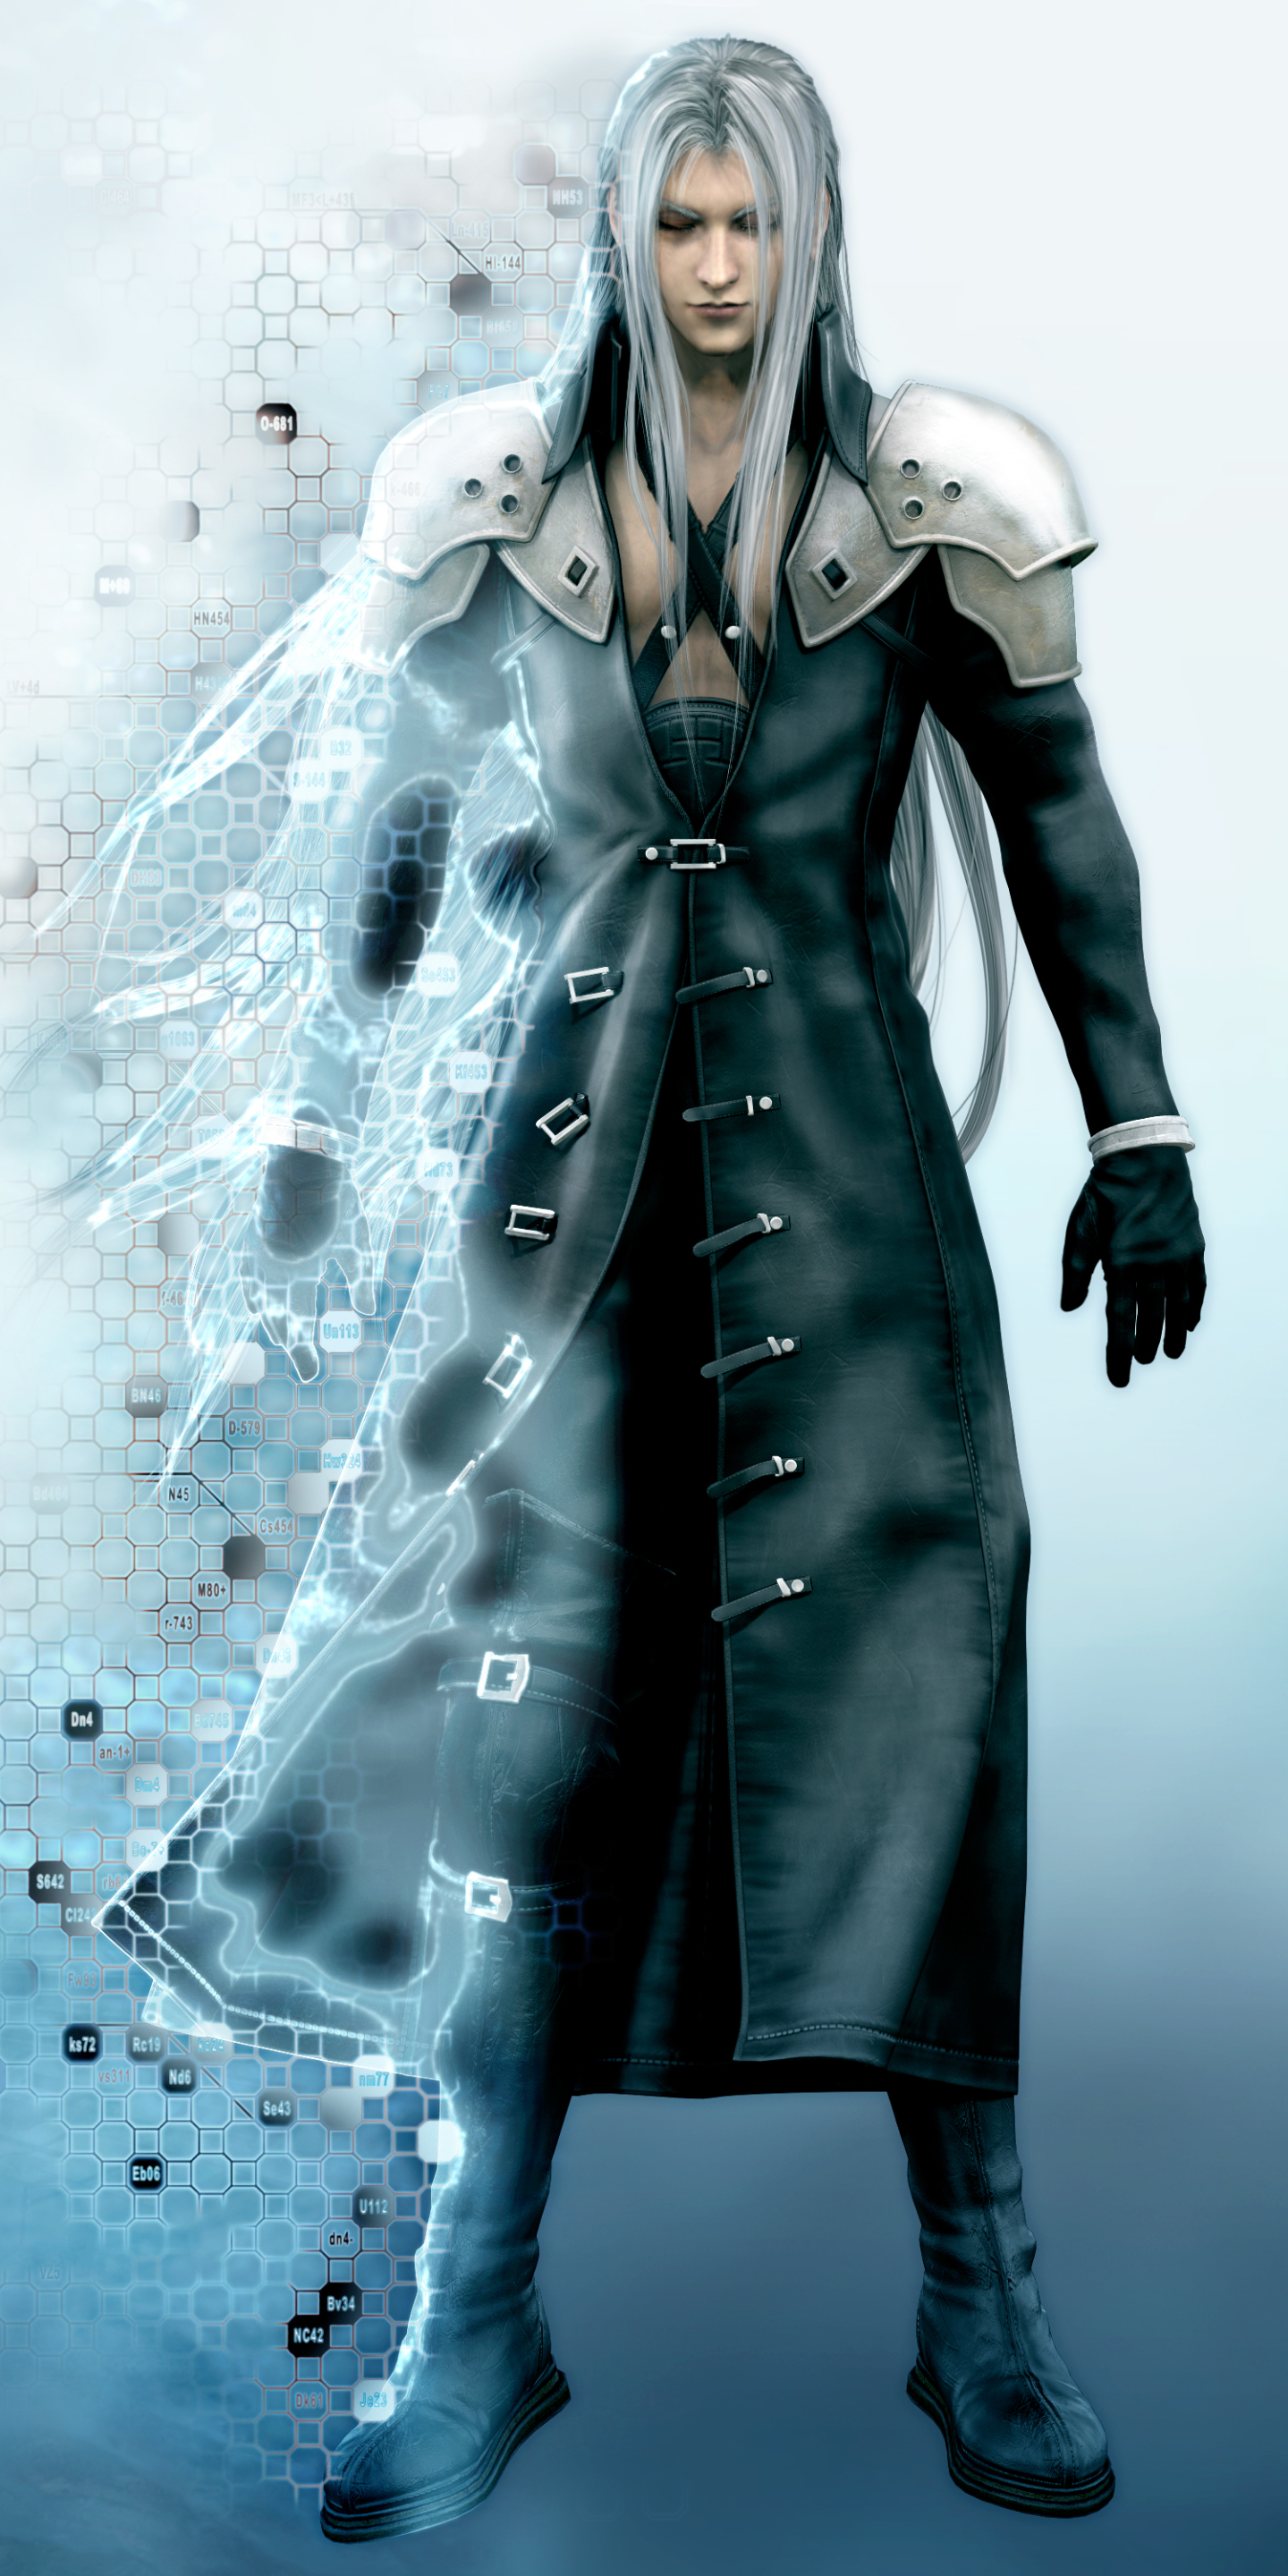 movie/final fantasy vii: advent children (1440x2880) wallpaper id